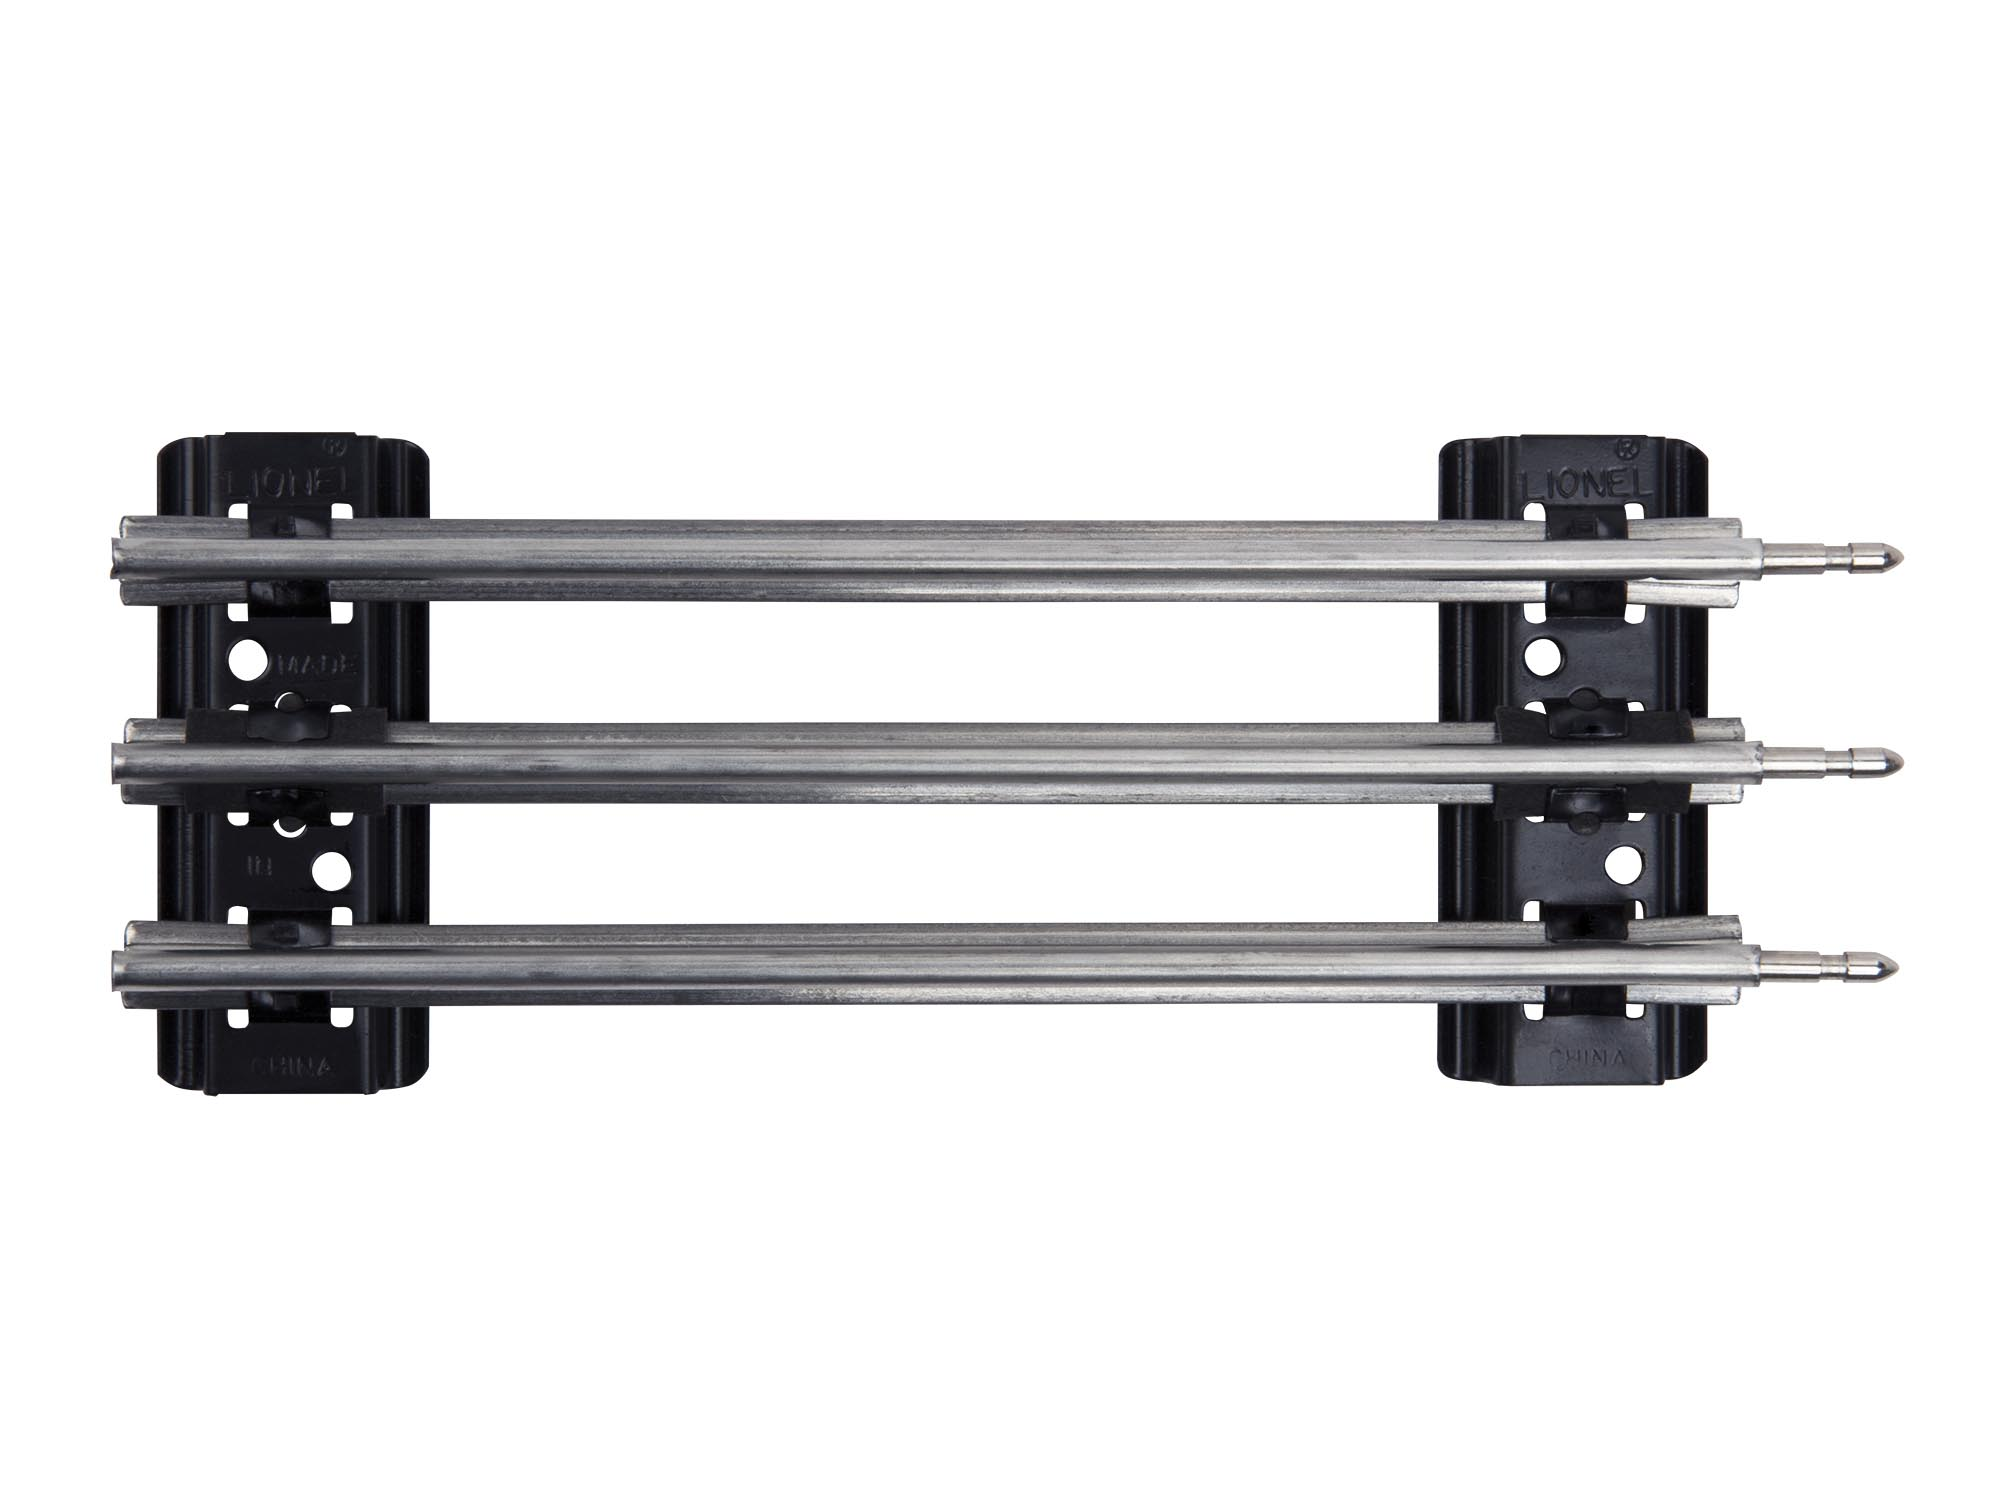 6-65505 1/2 STRAIGHT TRACK SECTION (0 GAUGE)